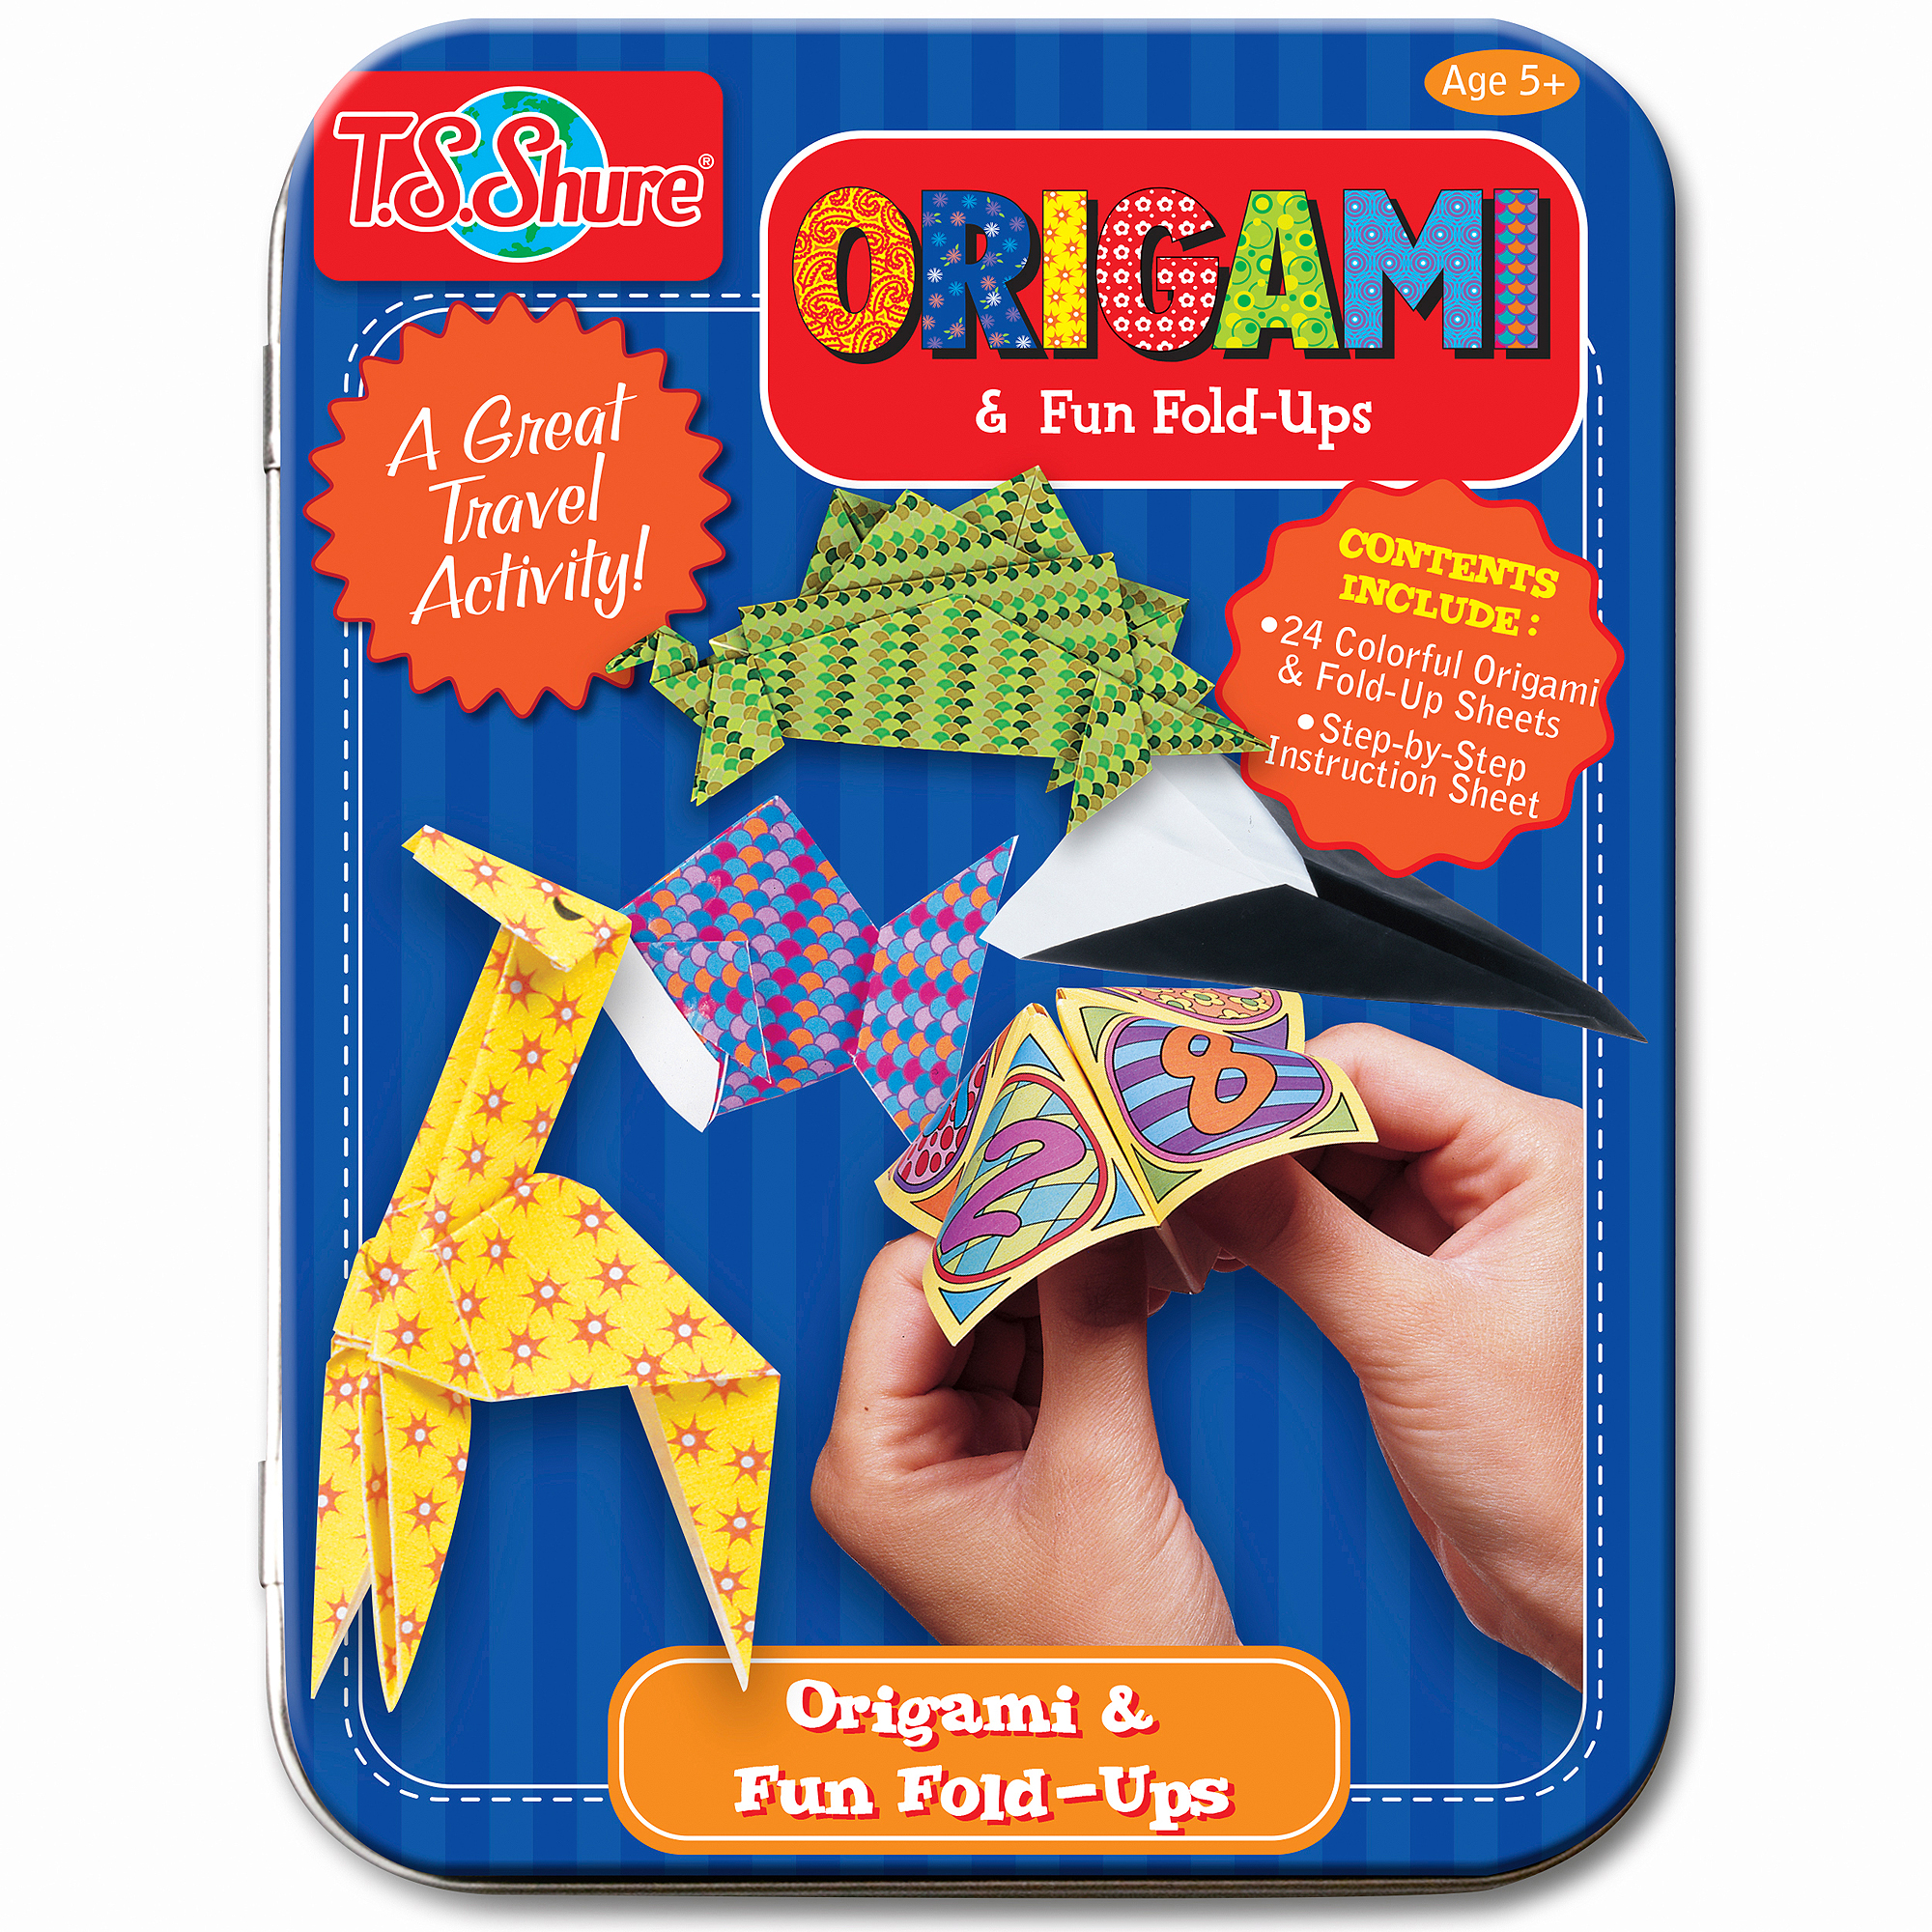 T.S. Shure Origami and Fun Fold-Ups Activity Mini Tin